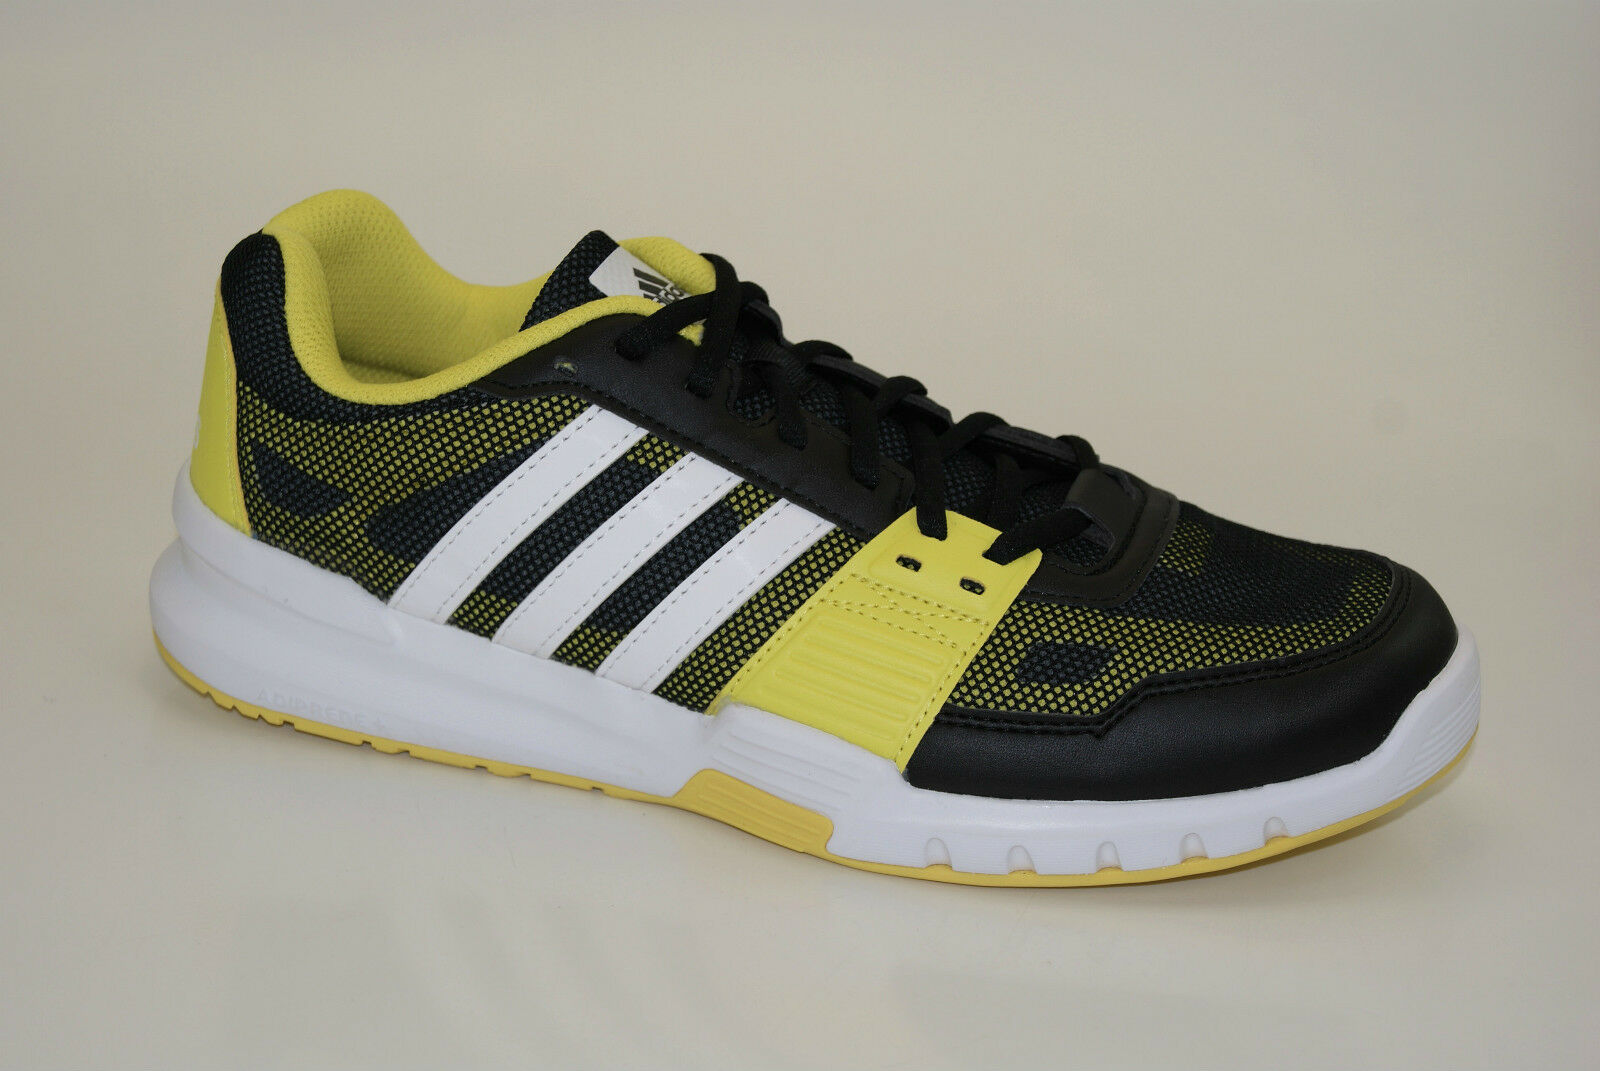 Adidas Essential Star 2 Trainers Sports shoes Sneakers Training Indoor